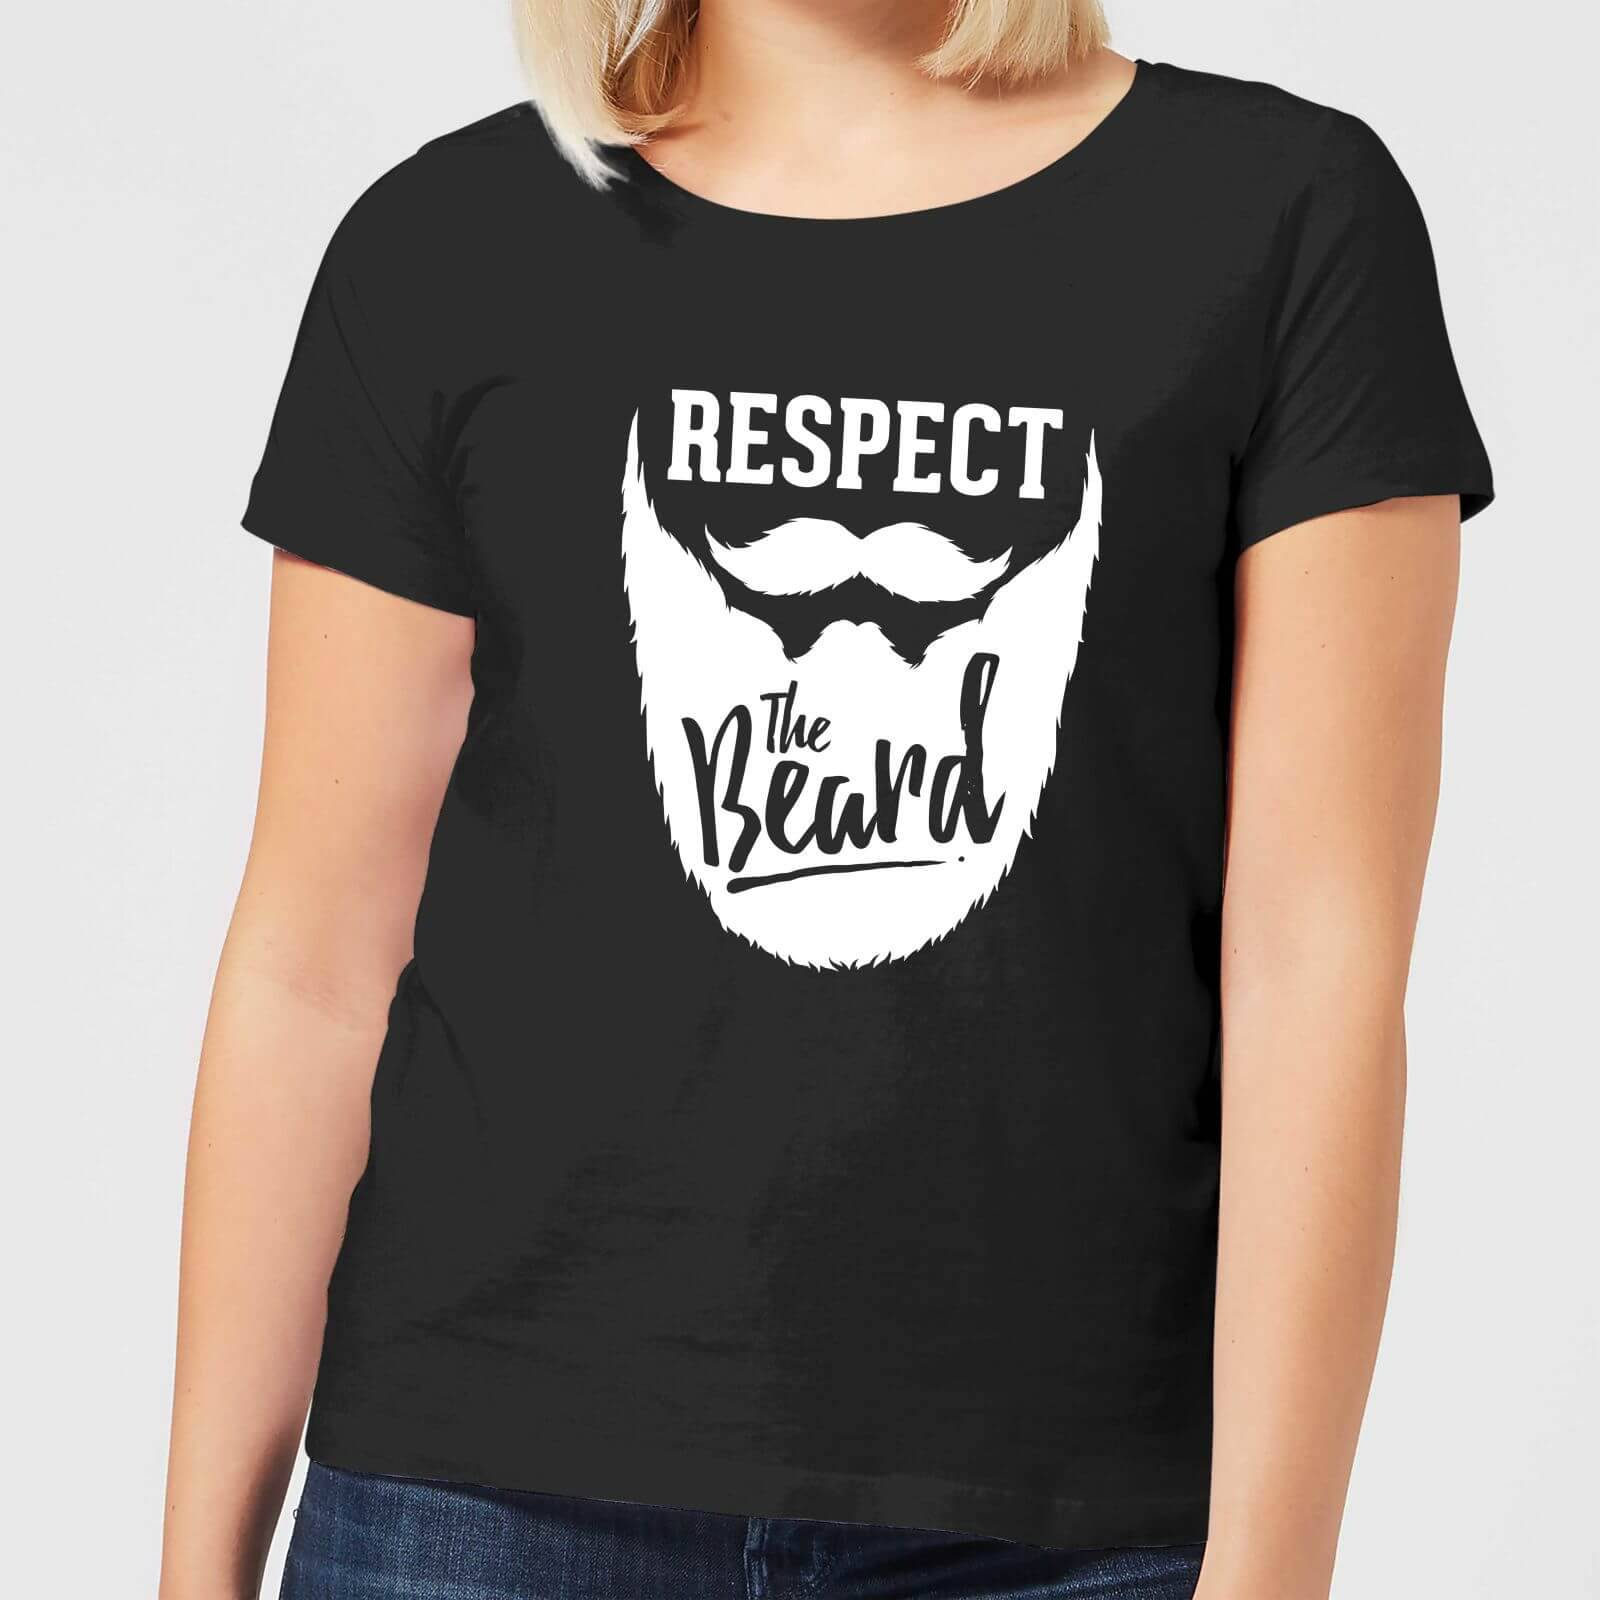 420a221ae Mens Slogan Collection Respect the Beard Women's T-Shirt - Black - XL -  Black